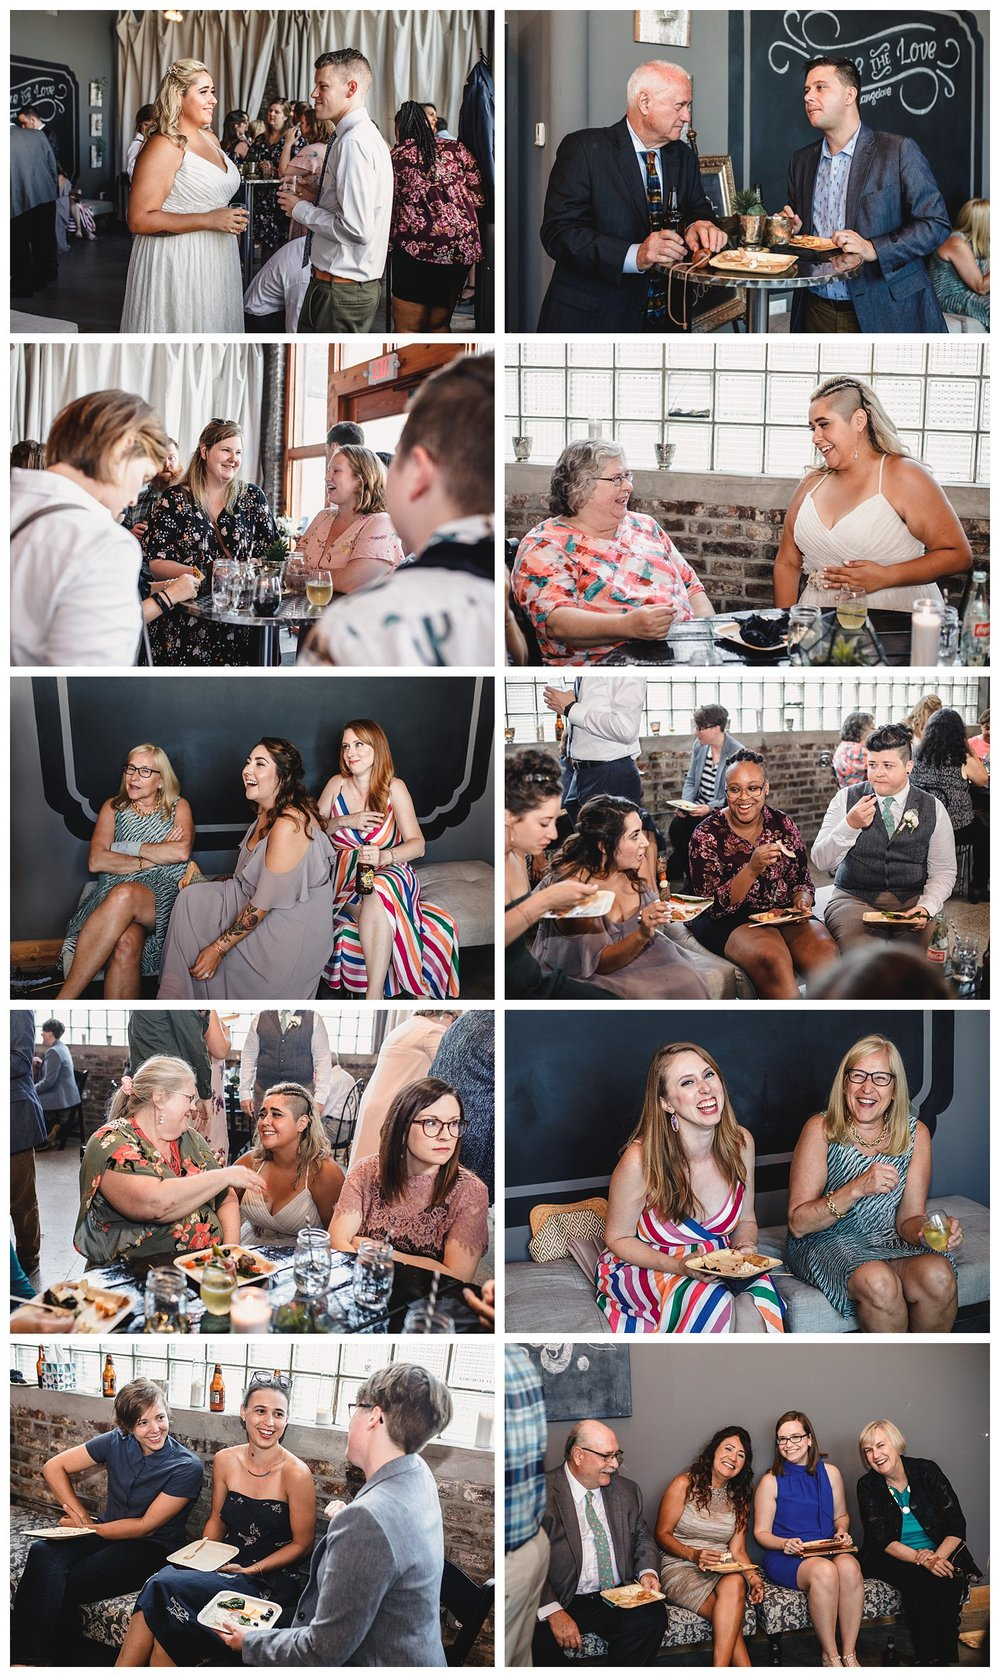 Kelsey_Diane_Photography_The_Vow_Exchange_Kansas_City_LGBT_Friendly_Wedding_Photographer_Kansas_City_Scout_Ica_0743.jpg